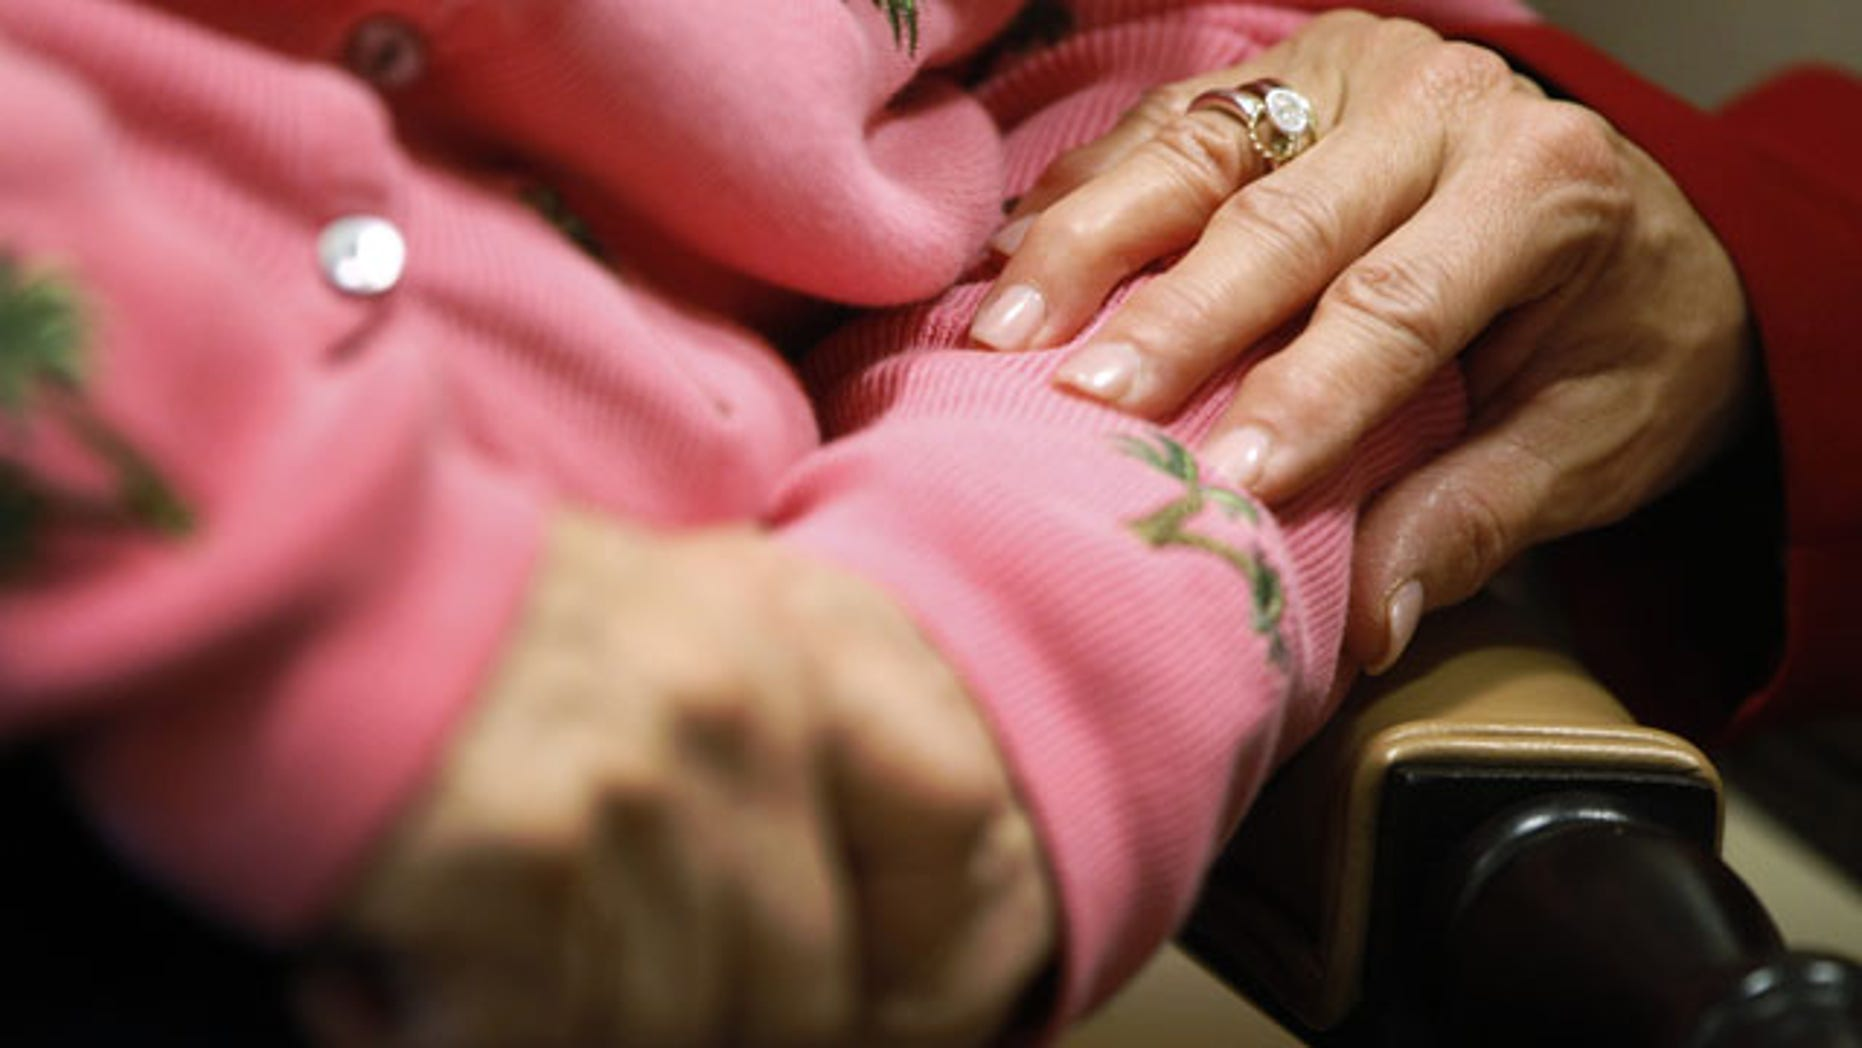 FILE - In this Feb. 6, 2012, file photo, Alexis McKenzie, right, executive director of The Methodist Home of the District of Columbia Forest Side, an Alzheimer's assisted-living facility in Washington, puts her hand on the arm of a resident. (AP Photo)